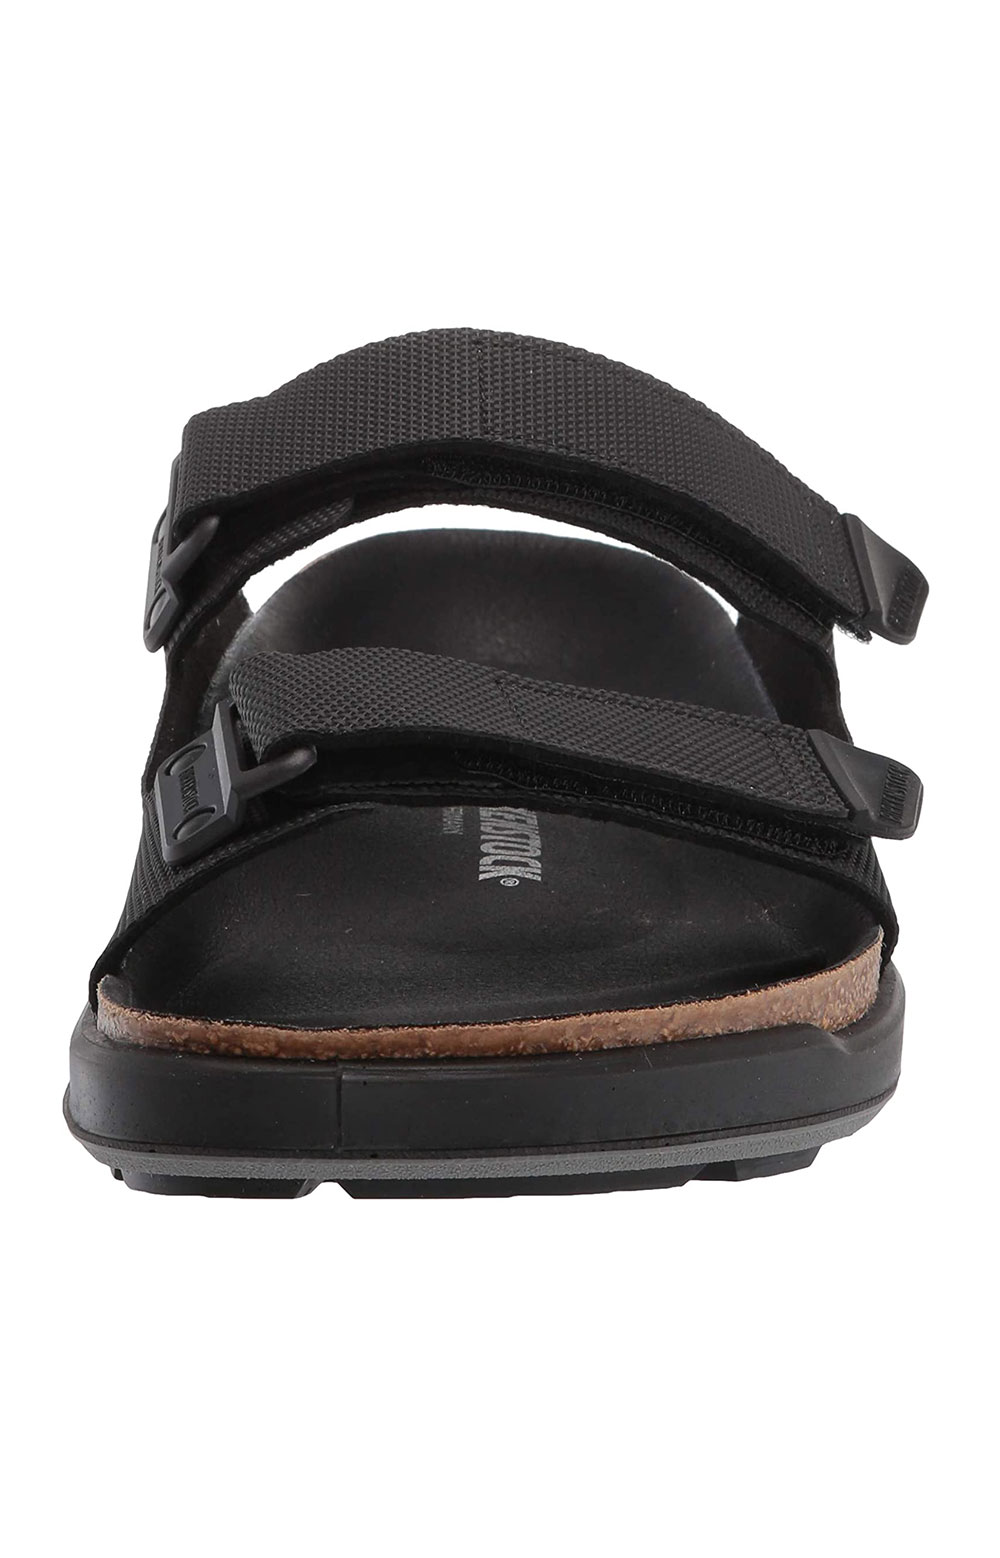 (1013755) Atacama Sandals - Future Black 5